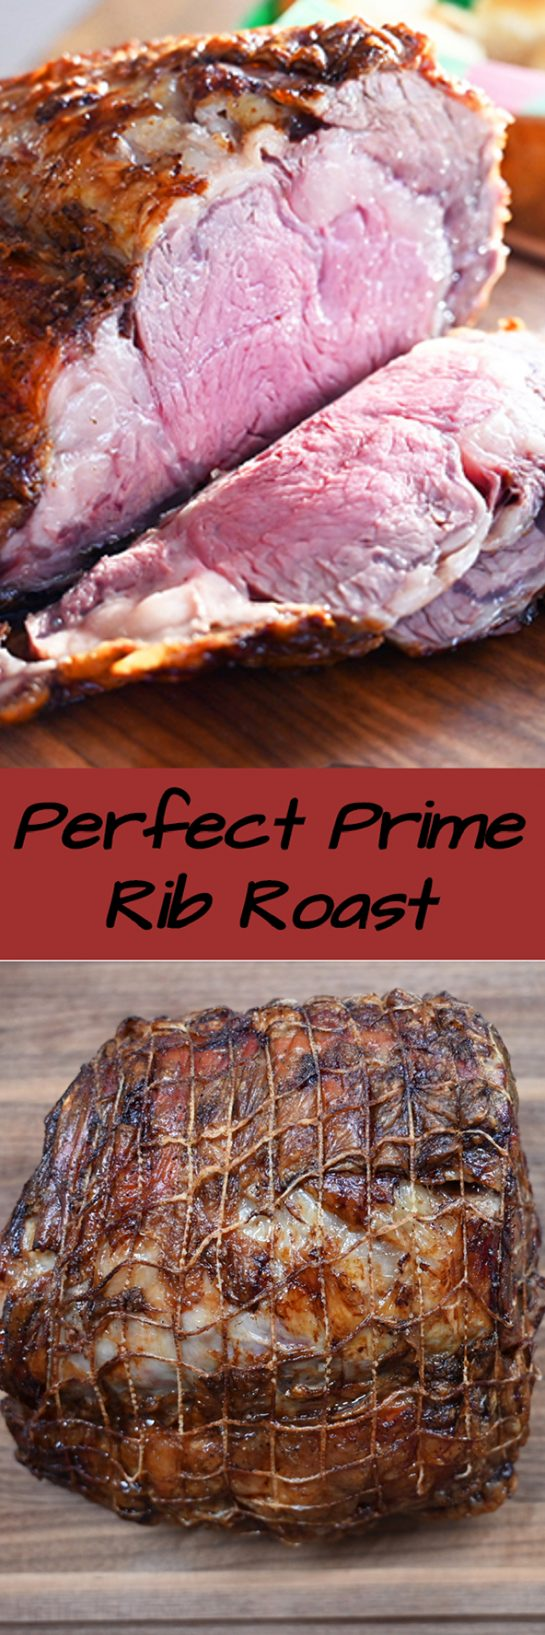 Easy, Perfect Prime Rib Roast comes out extremely tender, unbelievably juicy, and is the perfect roast to serve for the holiday season or any special occasion dinner!